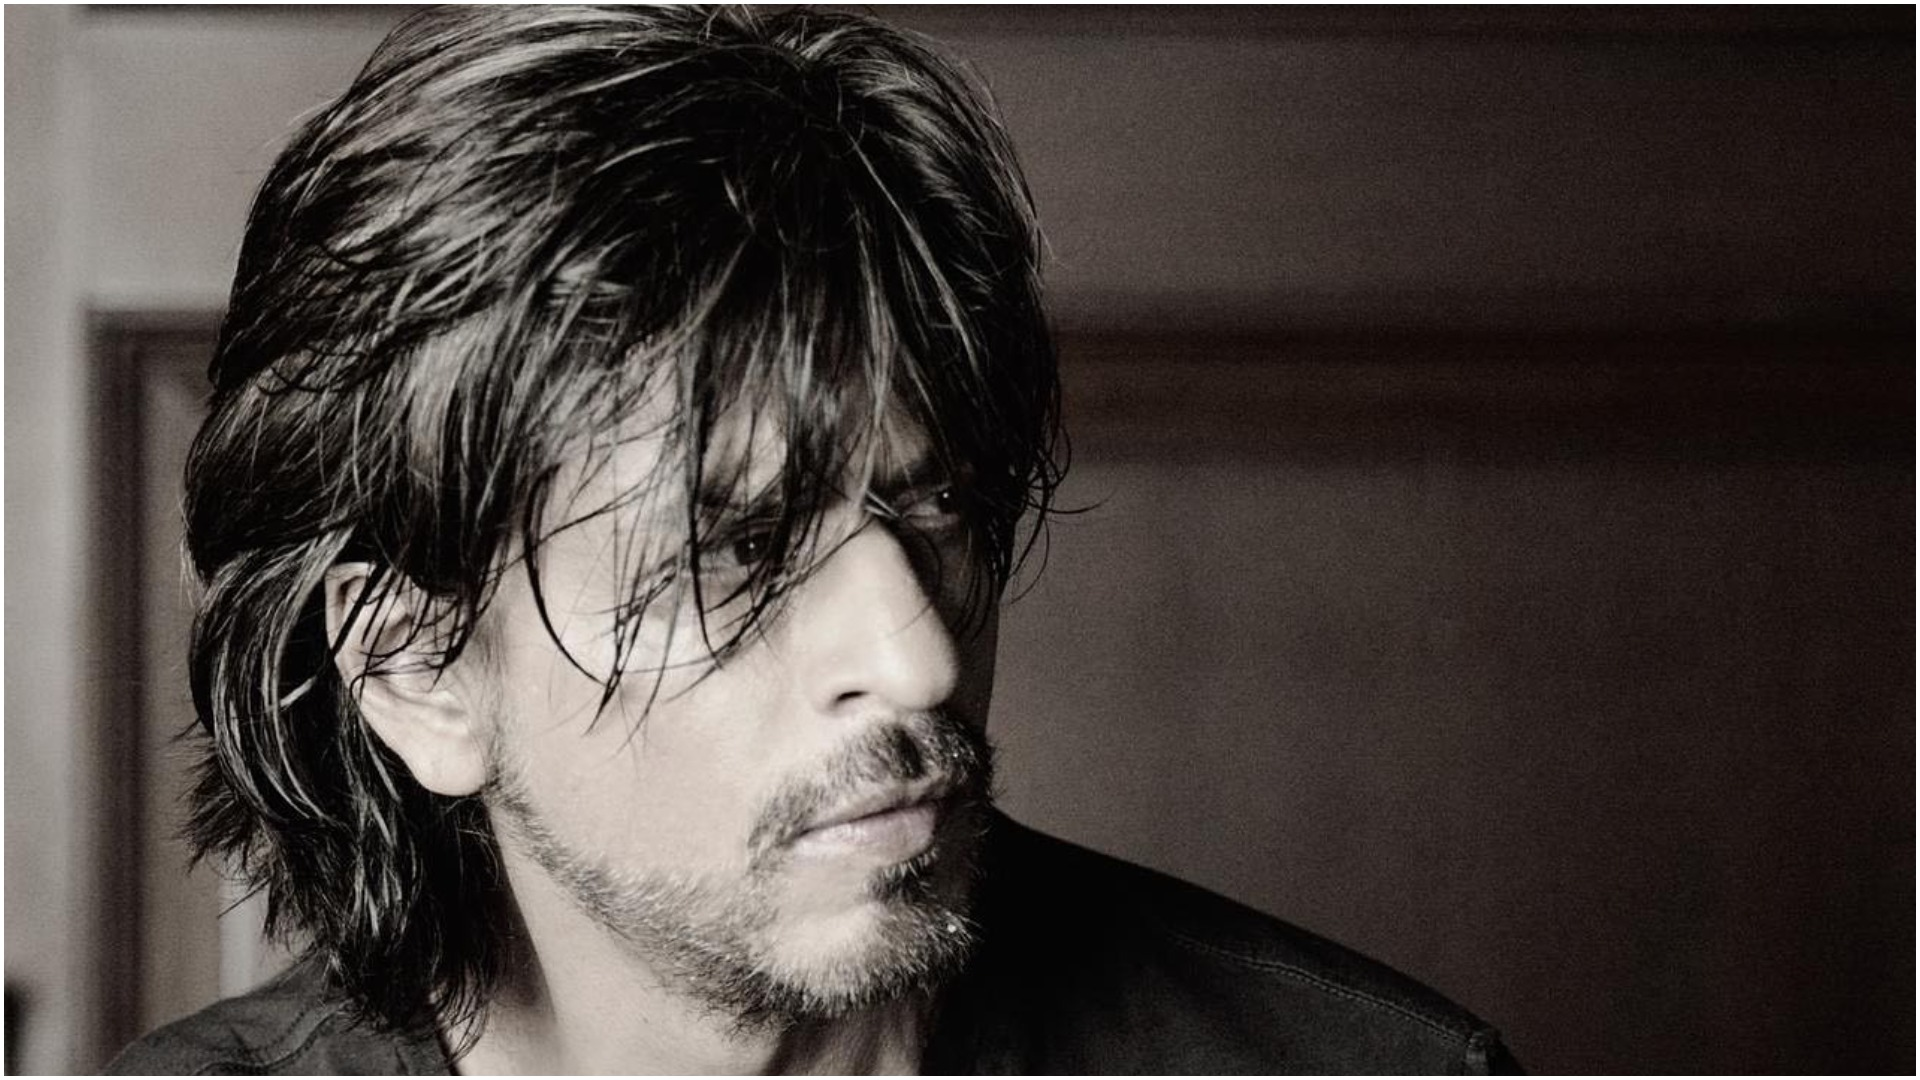 Not Tom Cruise, but this the real Shahrukh Khan of Hollywood